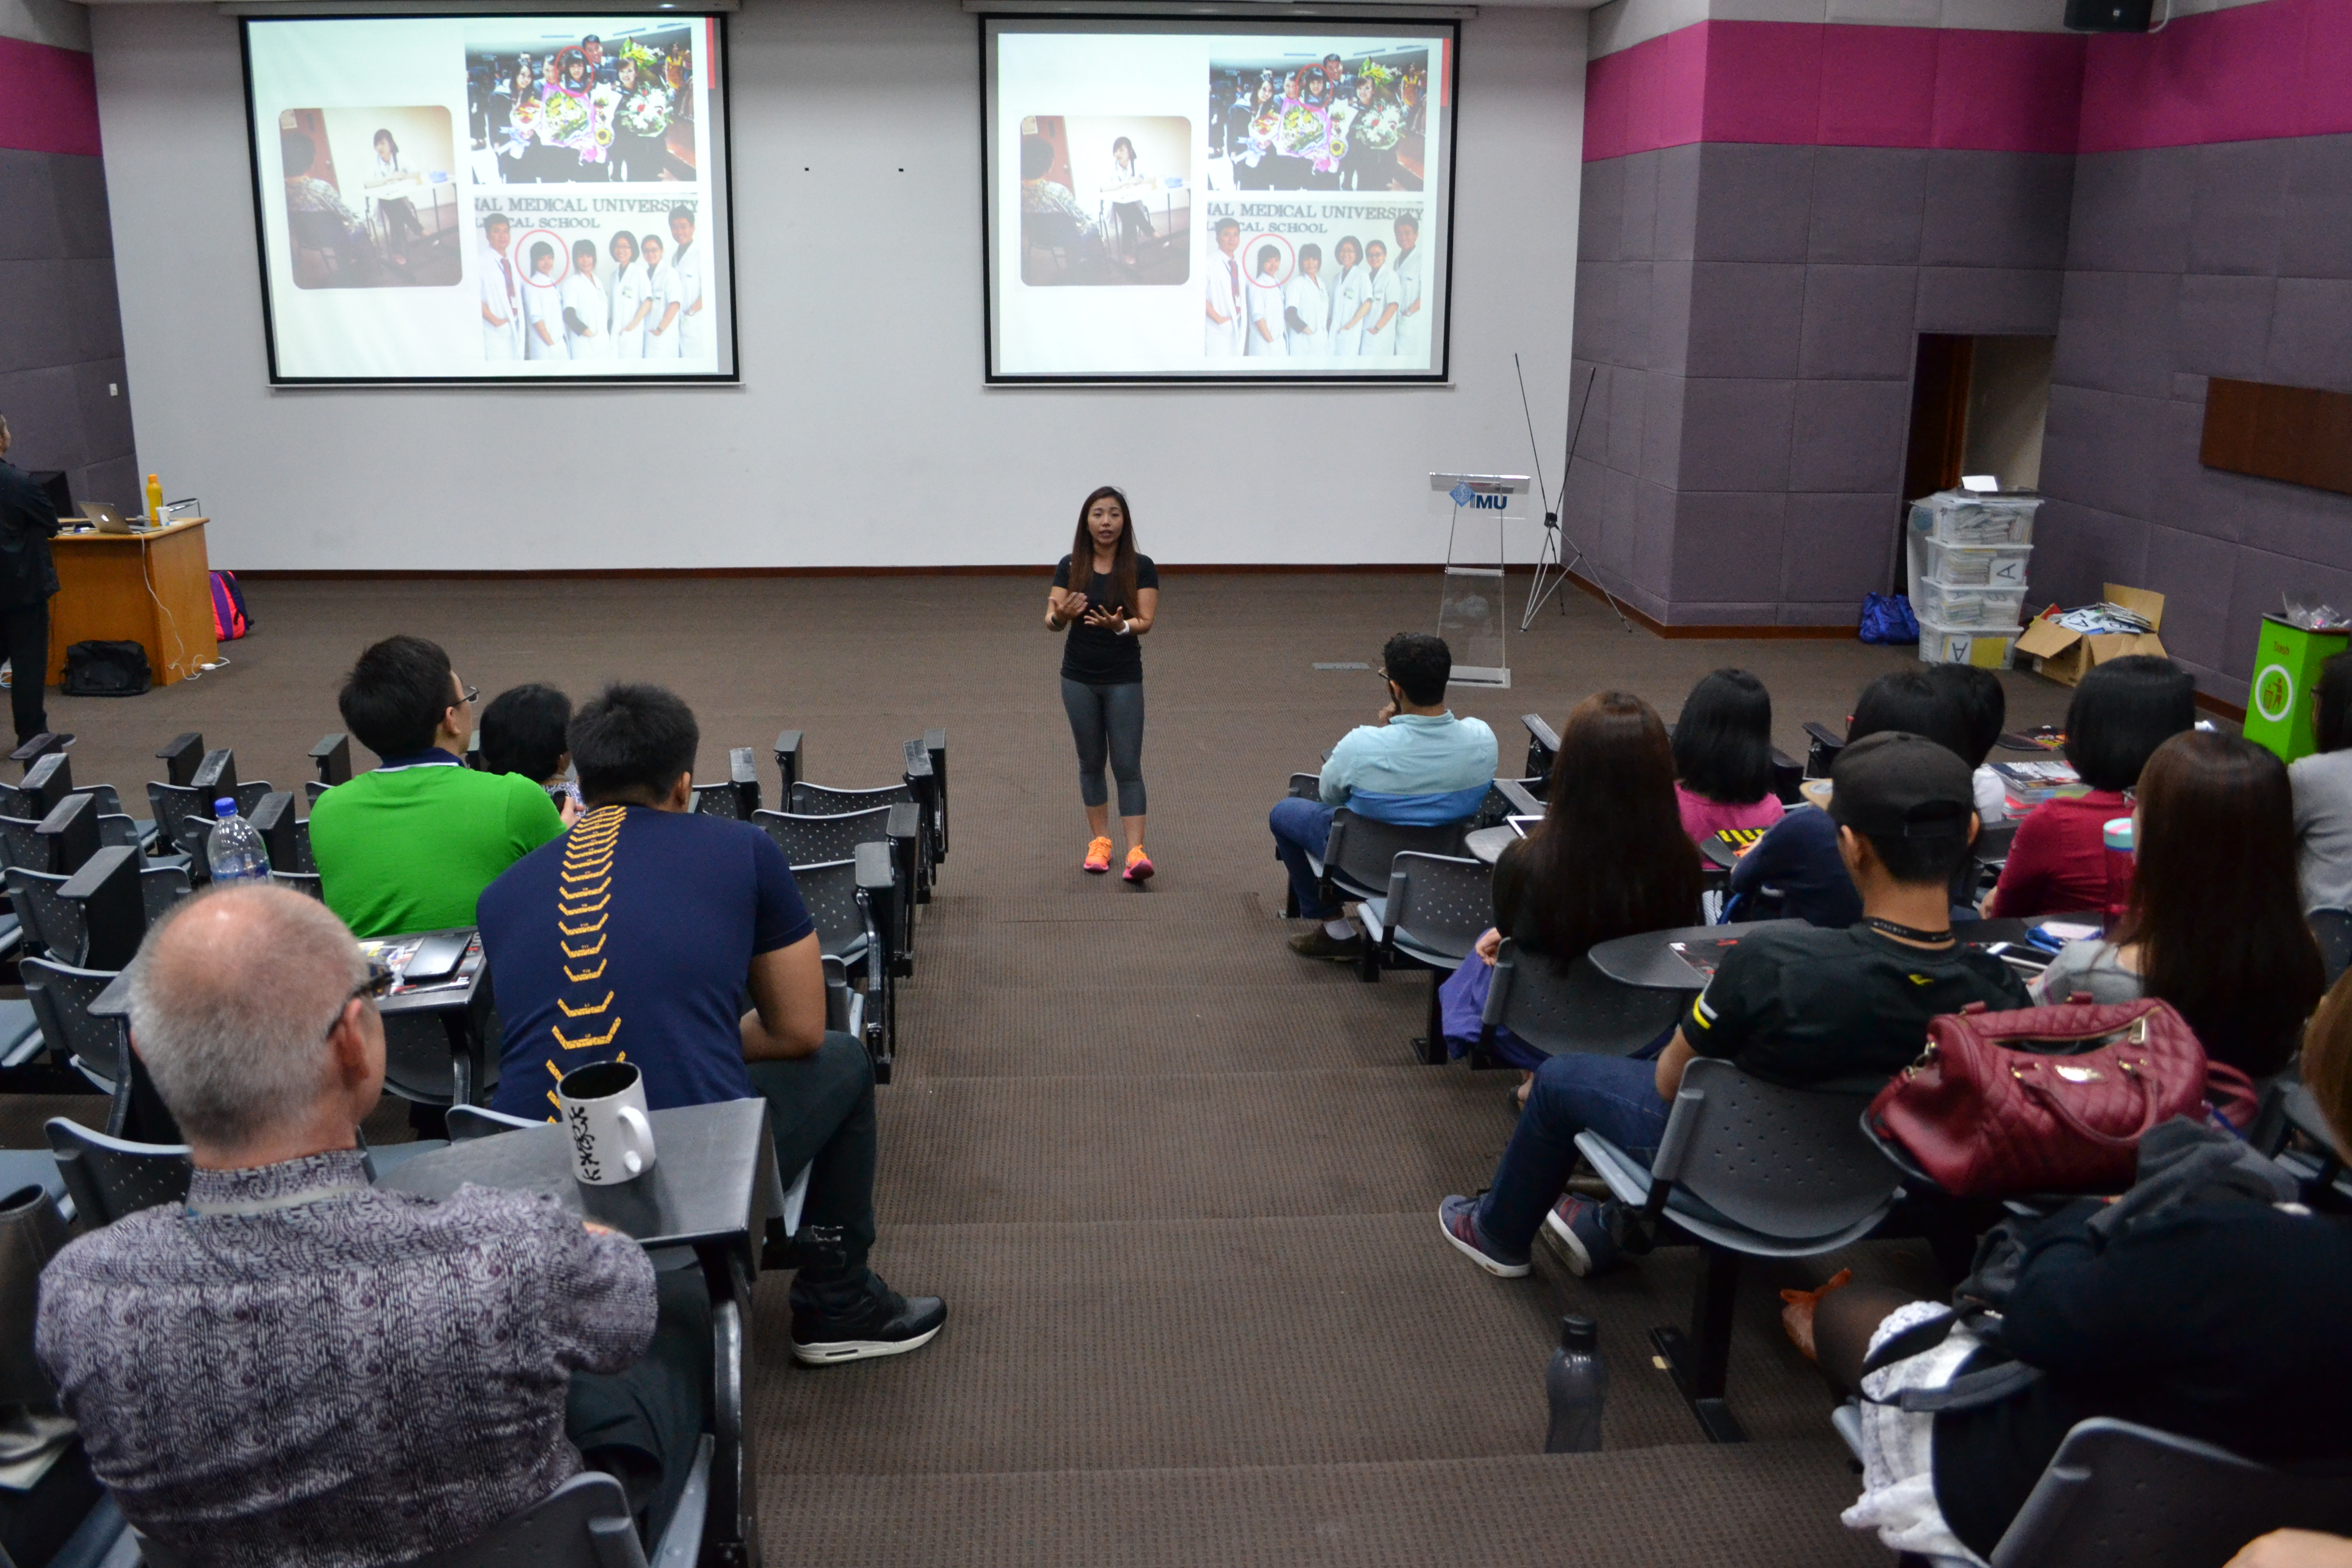 imu news learning more on being a fitness professional 28 jul 2015 learning more on being a fitness professional